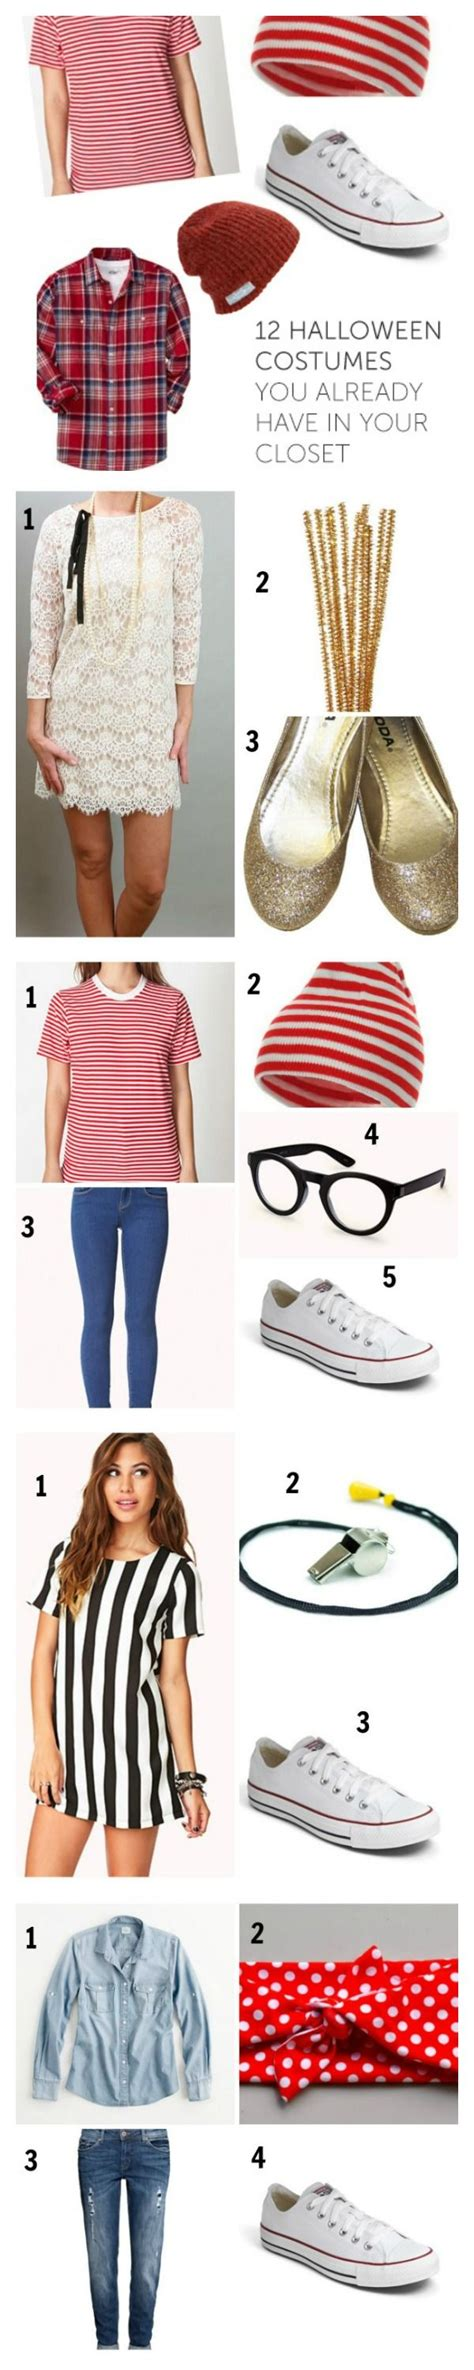 Costumes In Your Closet Ideas by 12 Costumes You Already In Your Closet